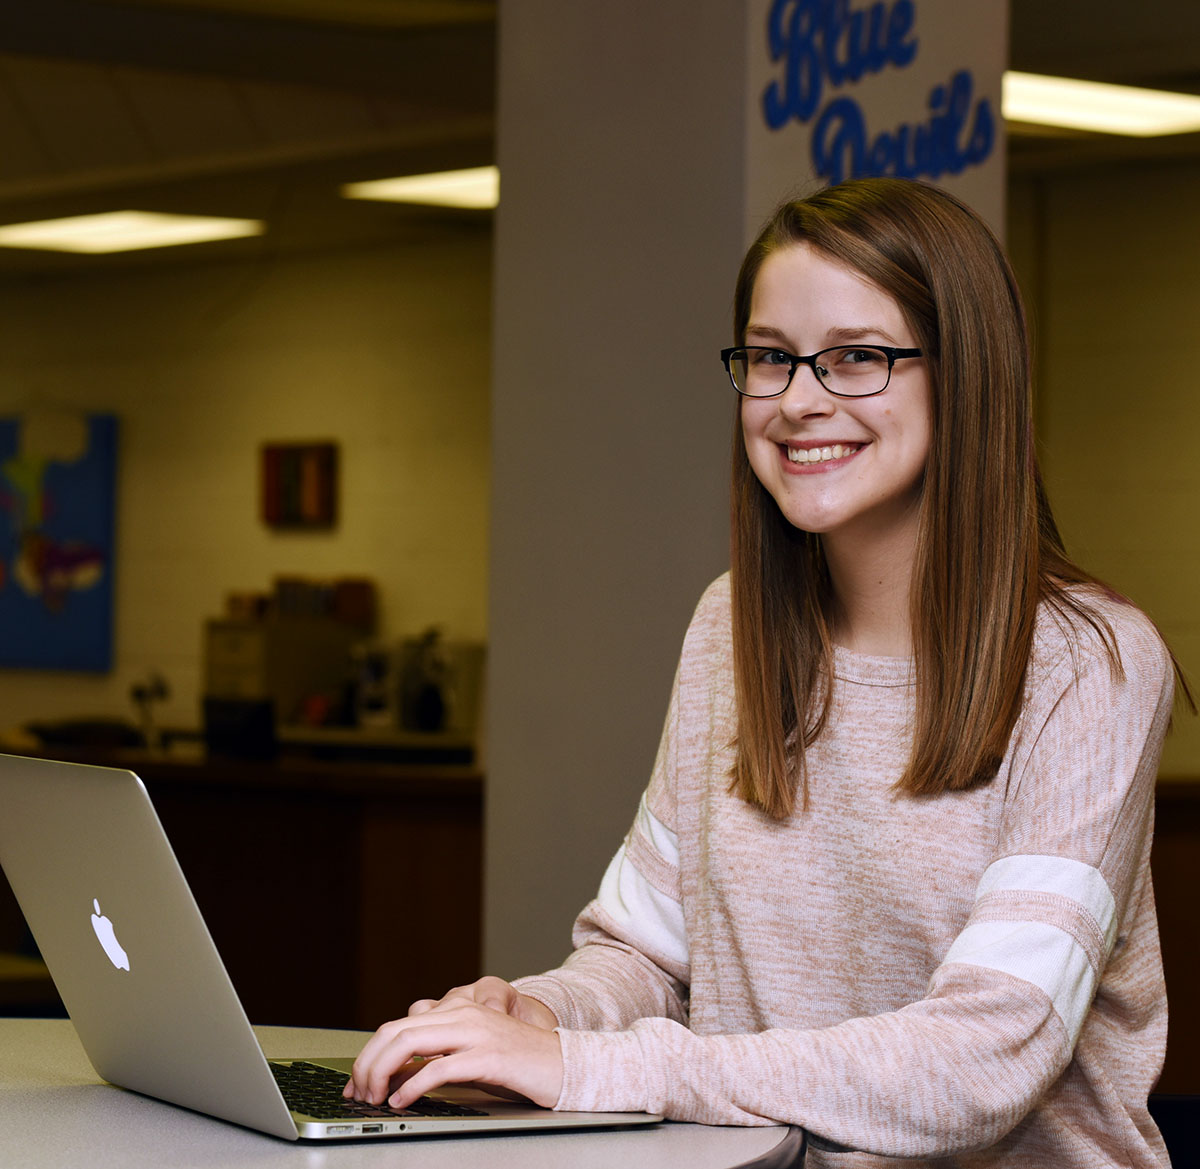 Ashlynn Holloman, a sophomore at South Lenoir High School, aspires to be a middle school math teacher and sees the similarities between coding and math. 'It's logical,' she says. Photo by Patrick Holmes / LCPS